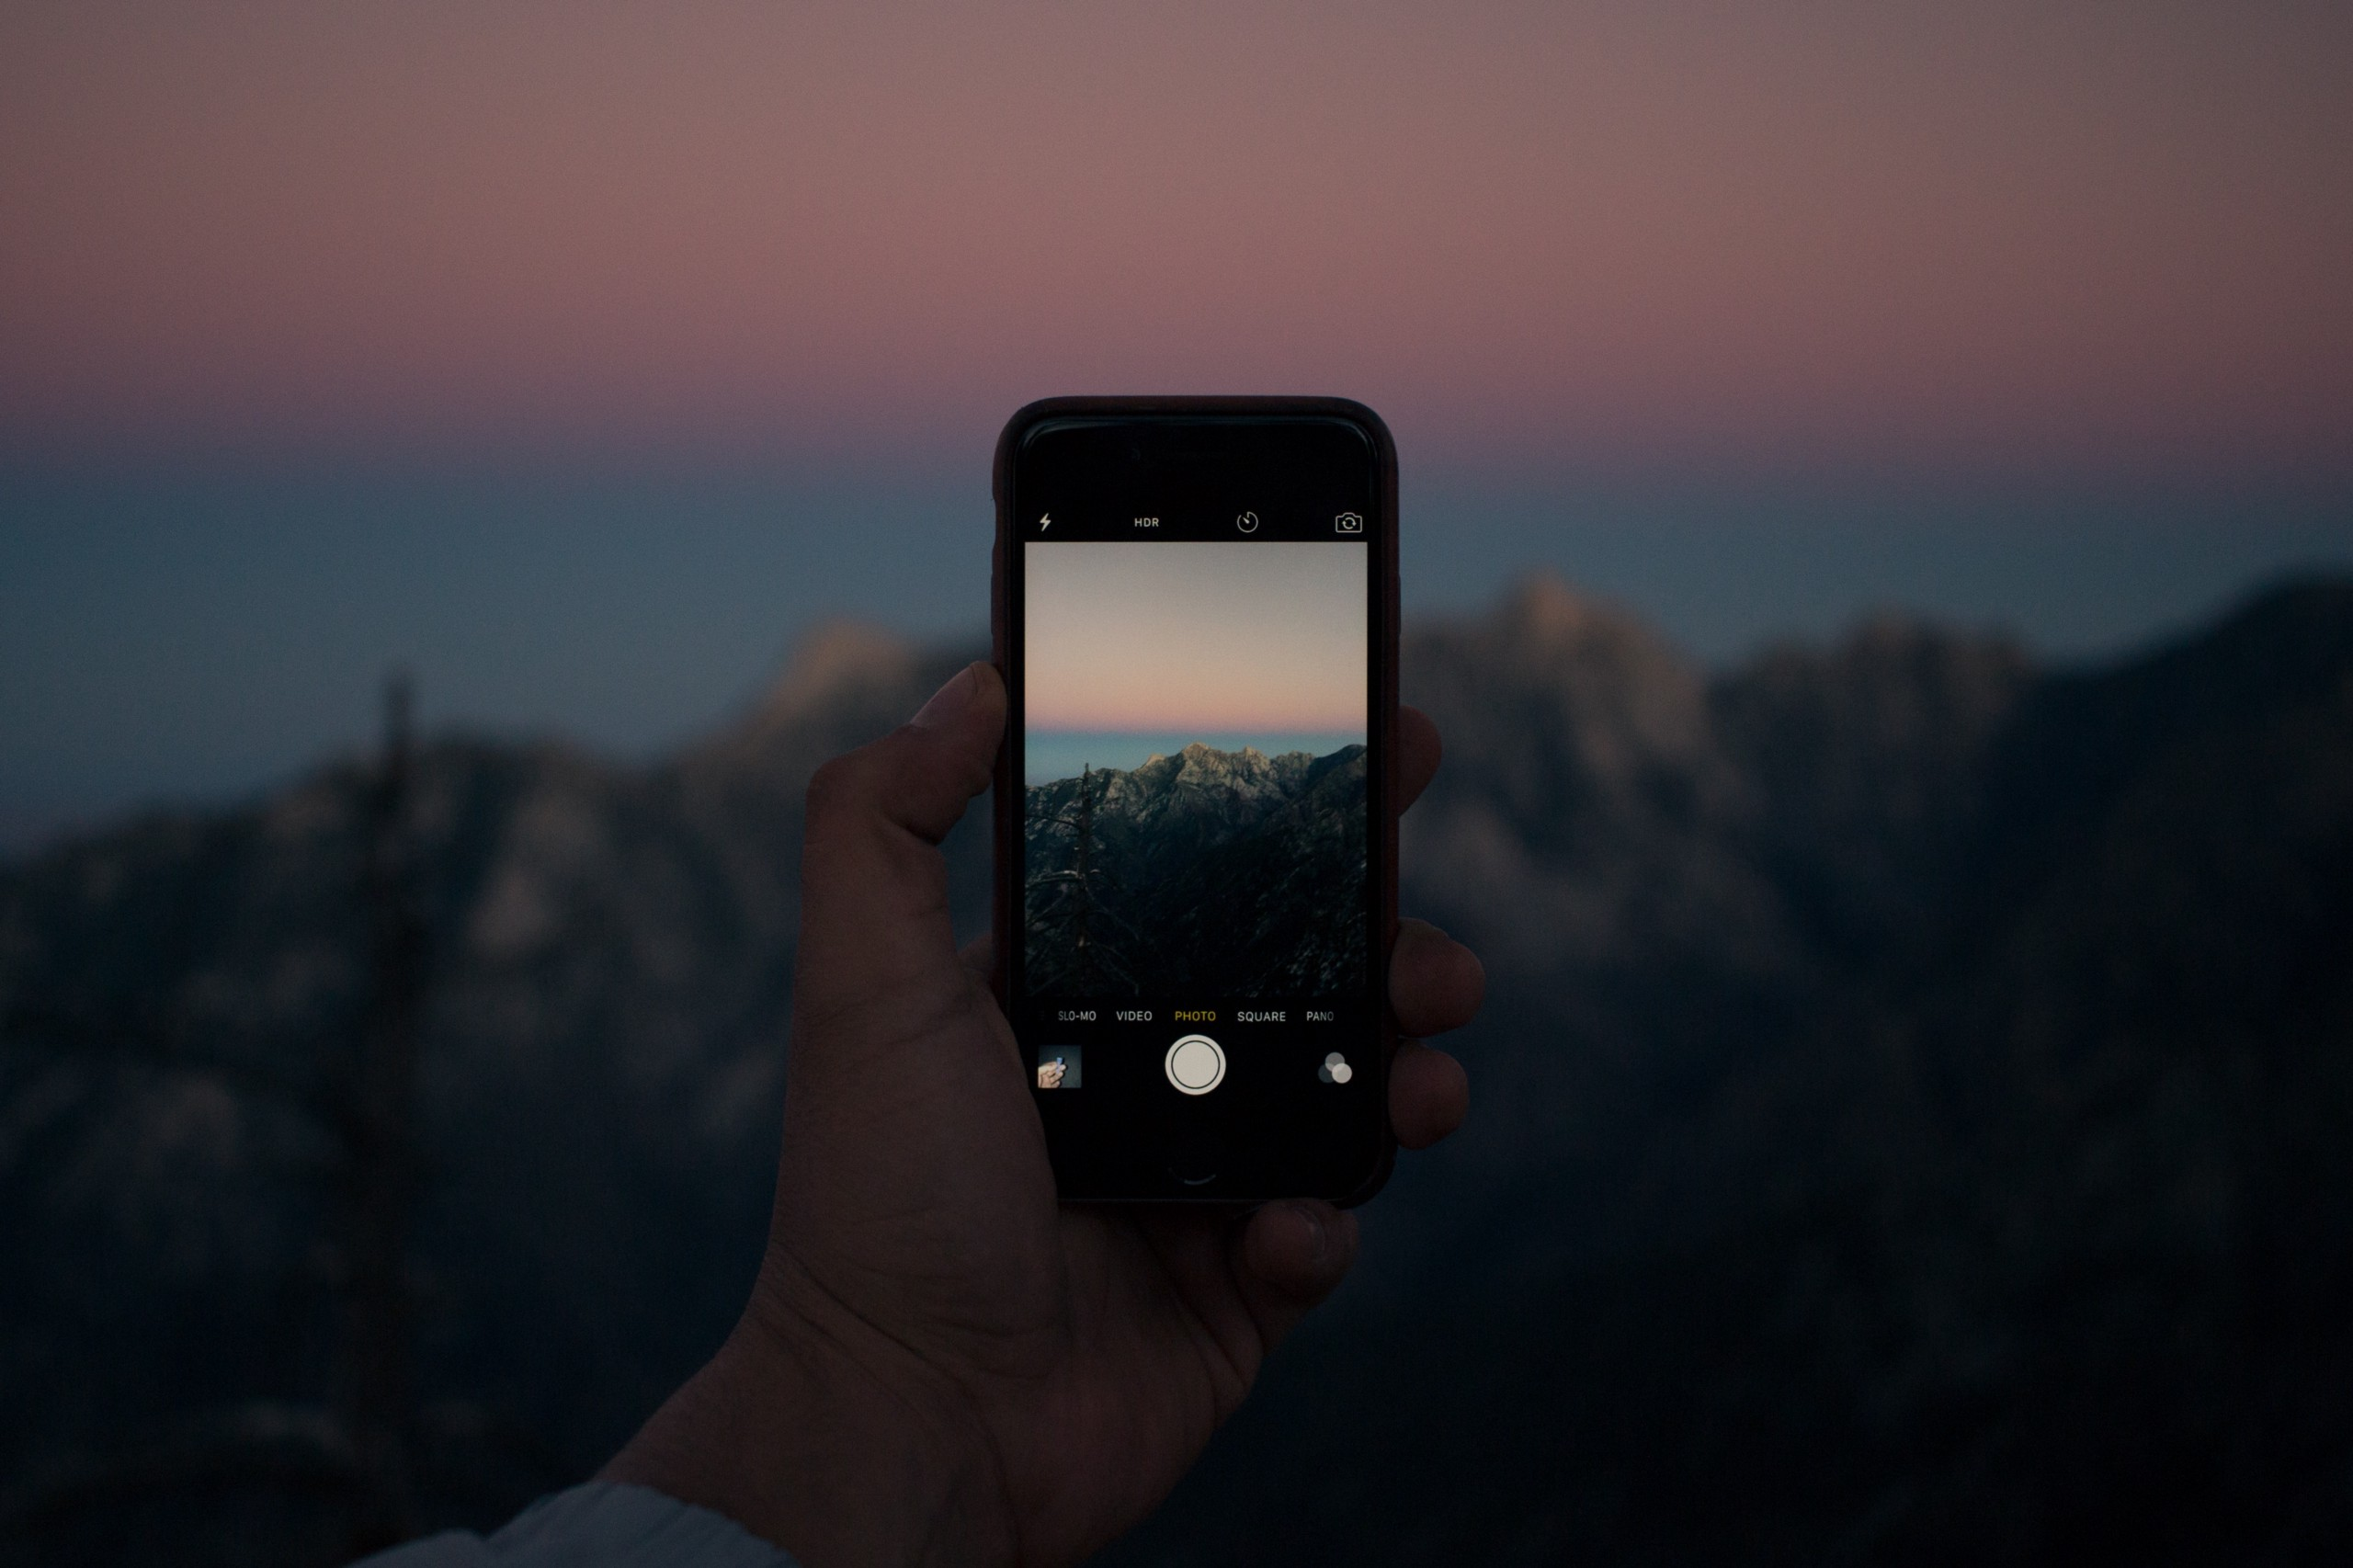 Photo credit: U[nsplash](https://unsplash.com/search/iphone-take?photo=PnyS8tiGdbo)